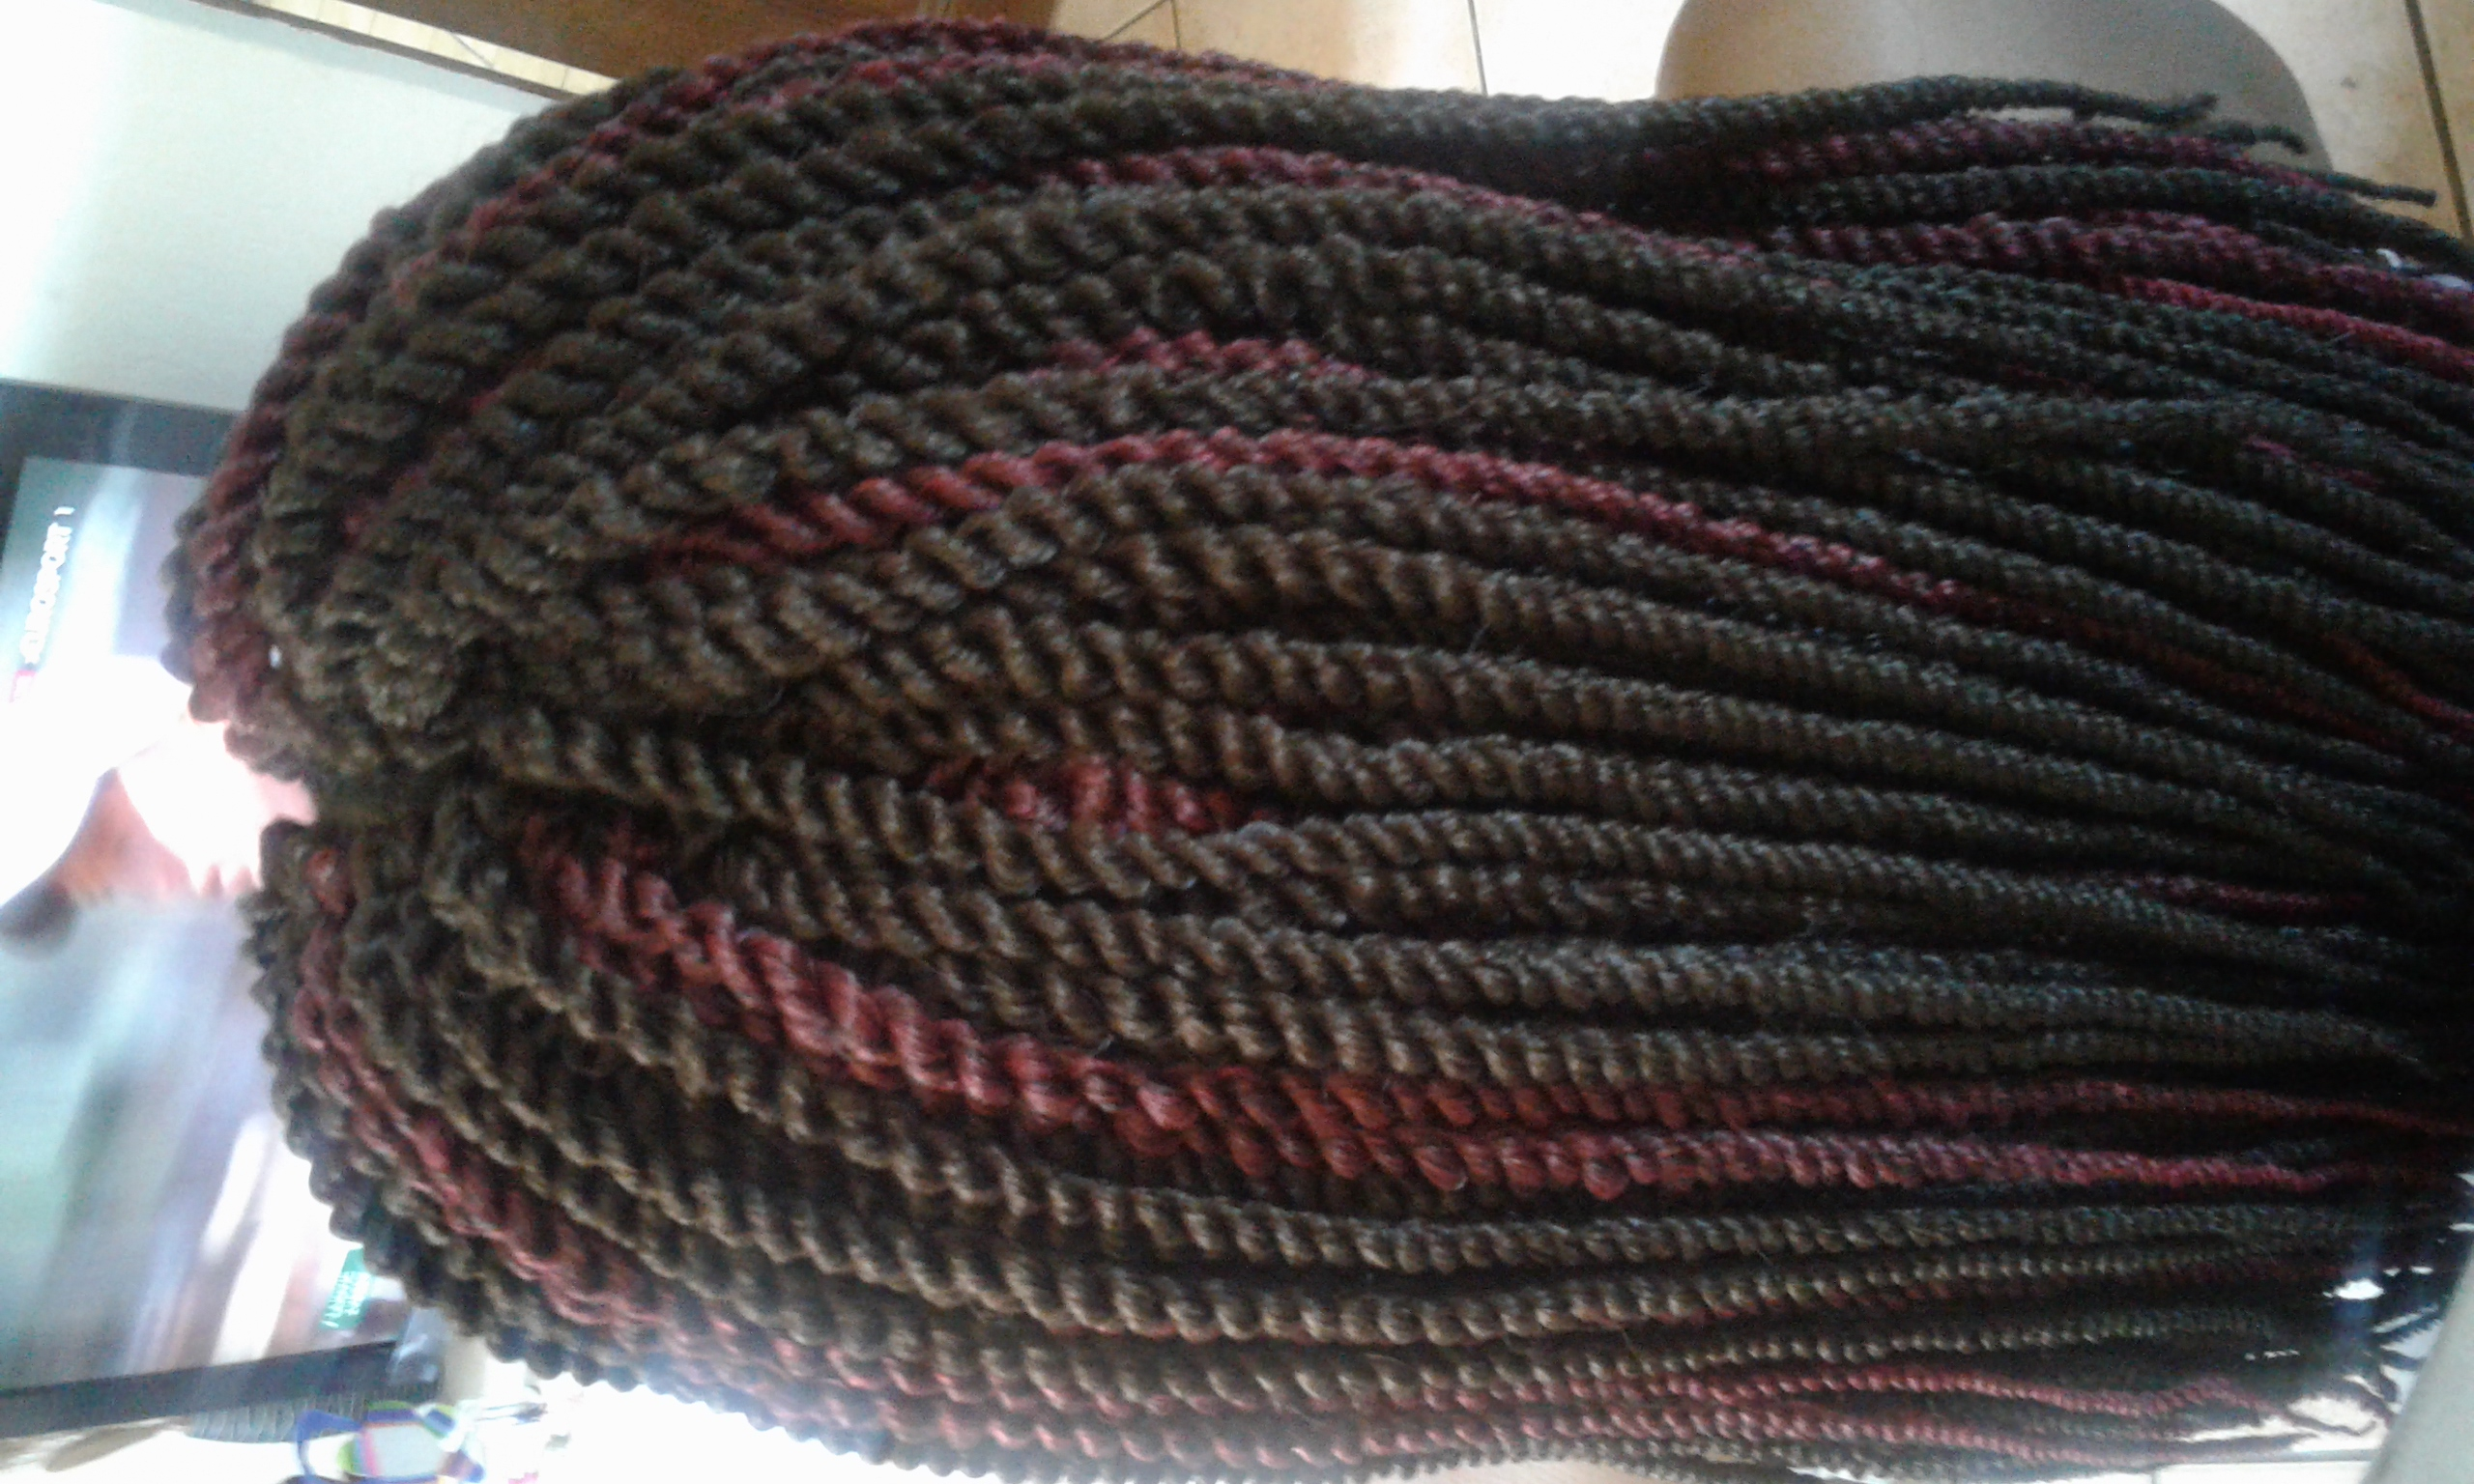 salon de coiffure afro tresse tresses box braids crochet braids vanilles tissages paris 75 77 78 91 92 93 94 95 YMMRYTGK